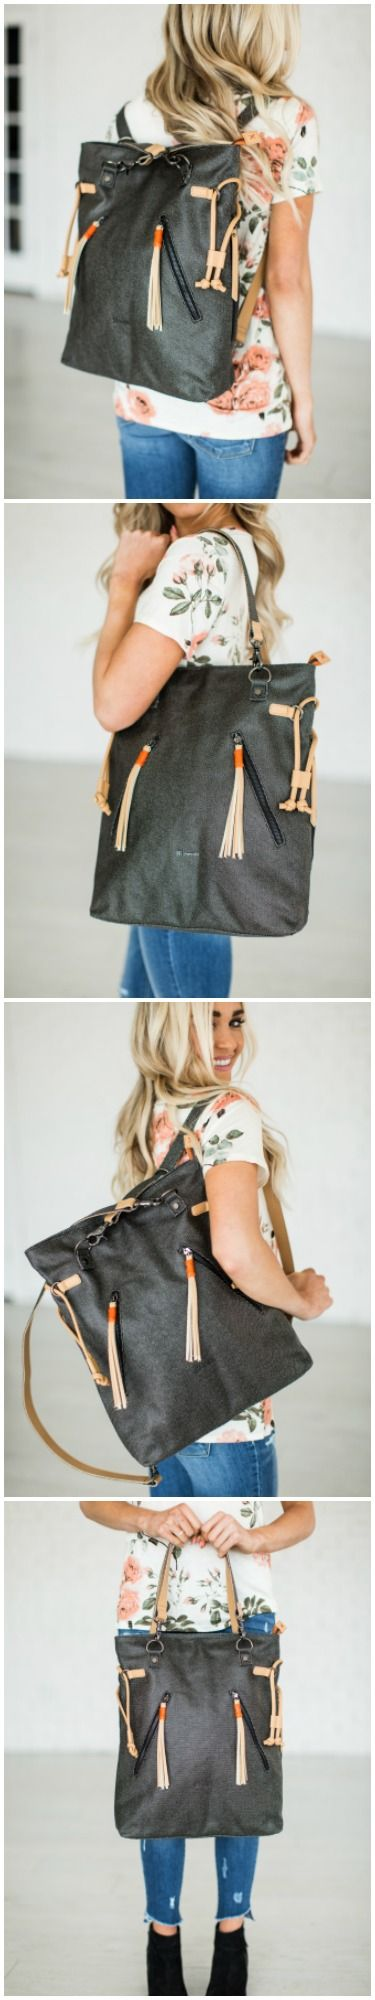 Tempest Tote Backpack by Sherpani \\ Mindy Mae's Market